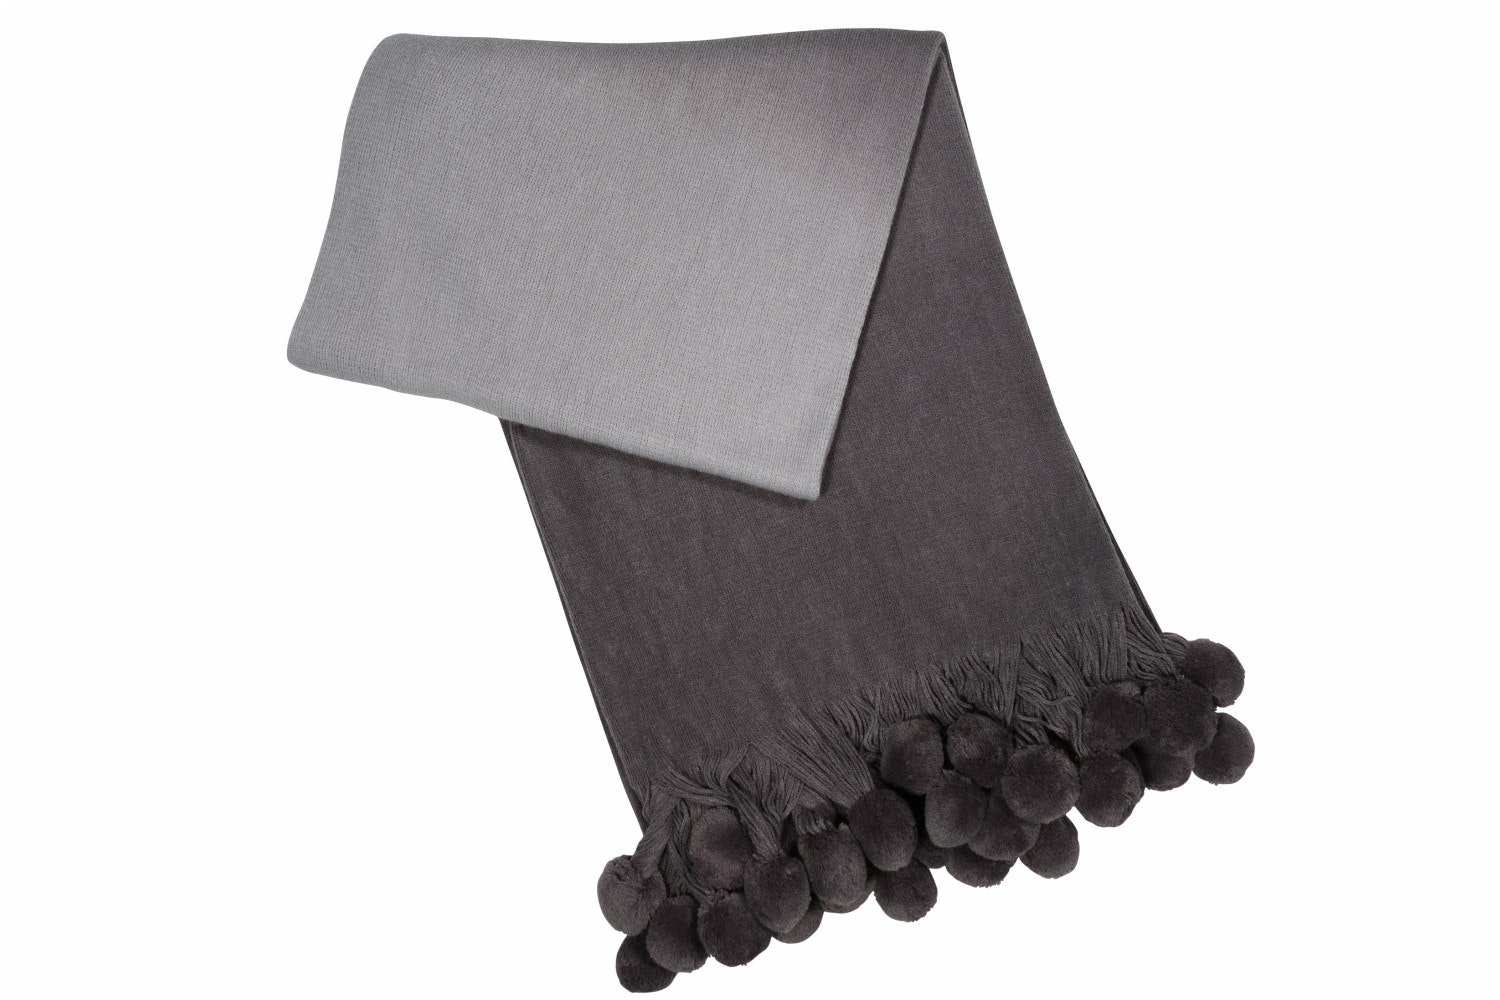 Pom Pom Ombre Throw Grey